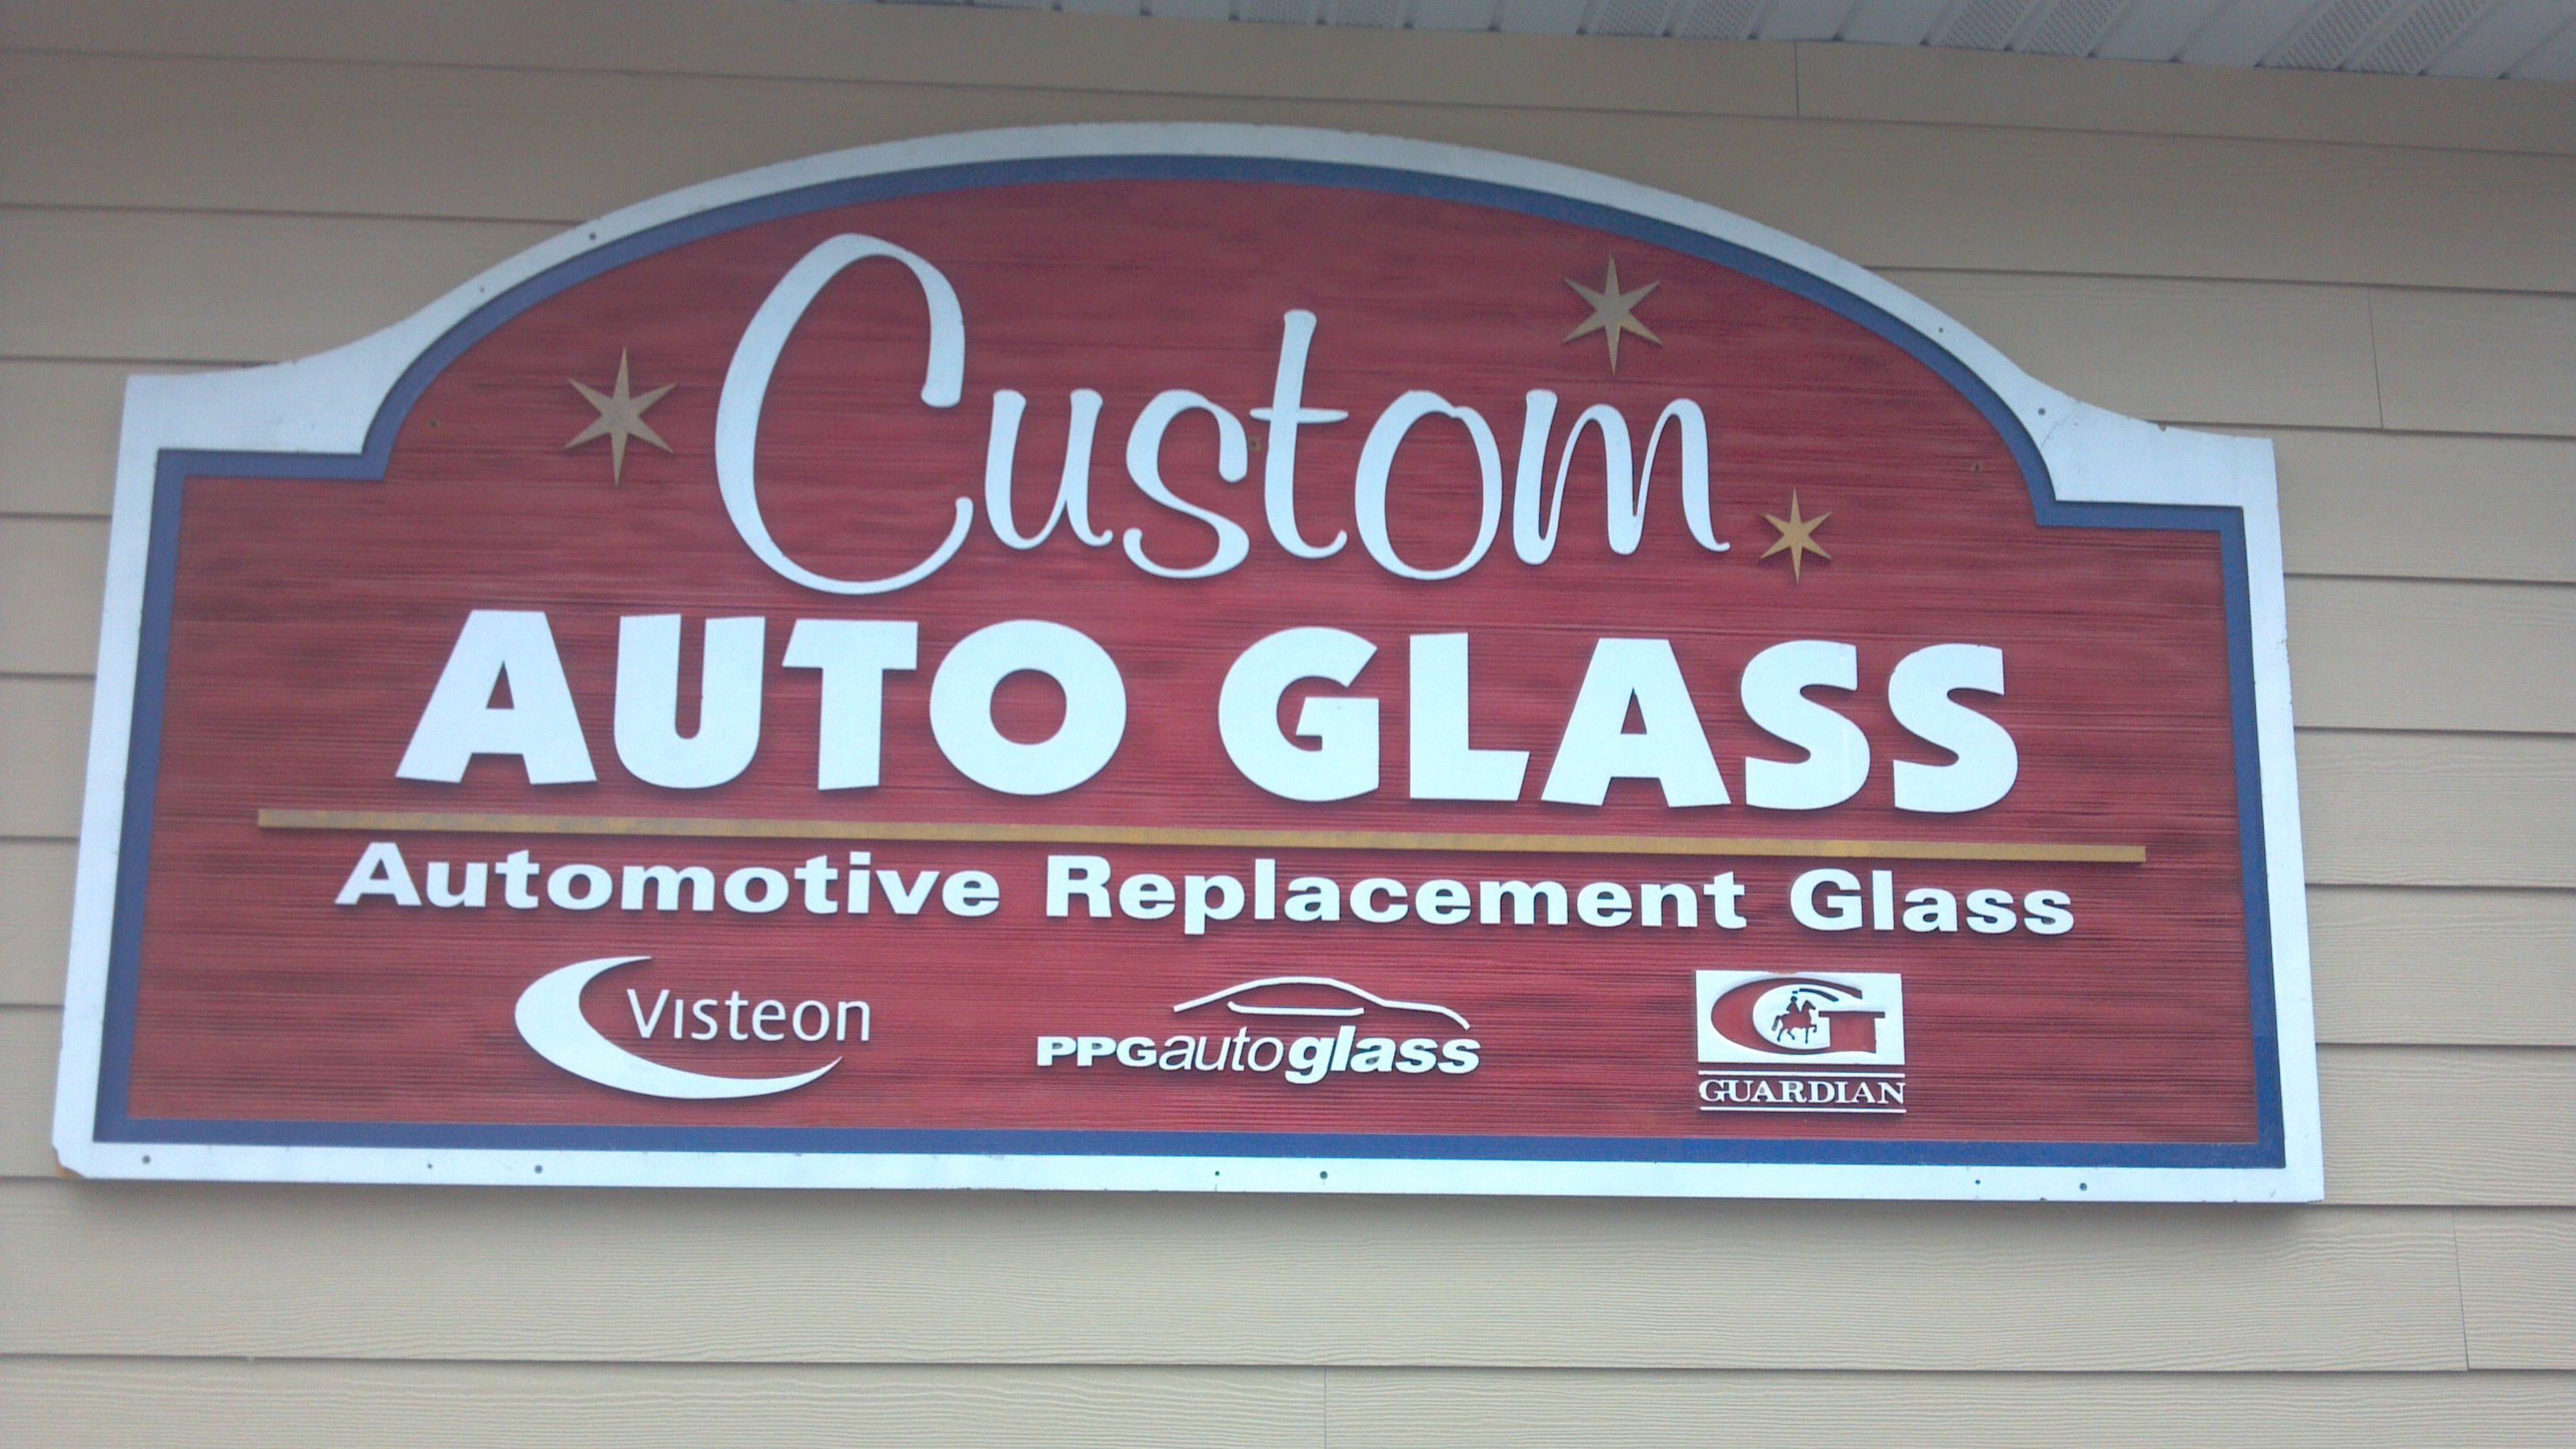 Auto Glass Replacement Quote Stopor Call For A Quote 1615 Market Street Hannibal Mo 63401 .